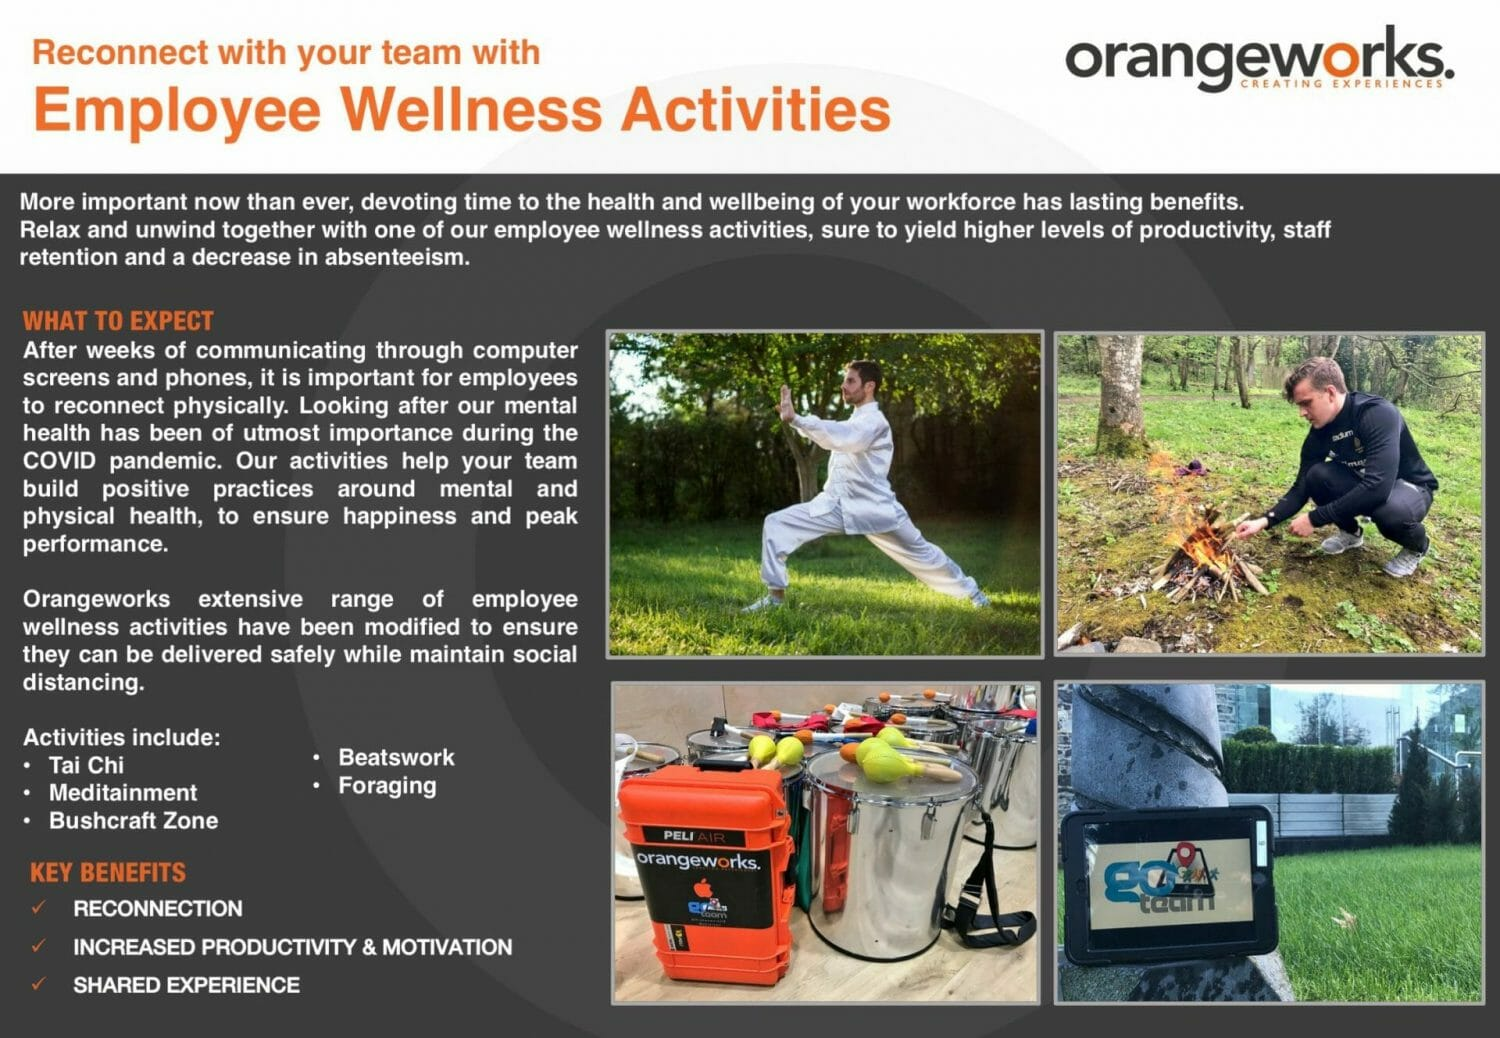 Orangeworks physical team bonding activities and employee wellness activities.